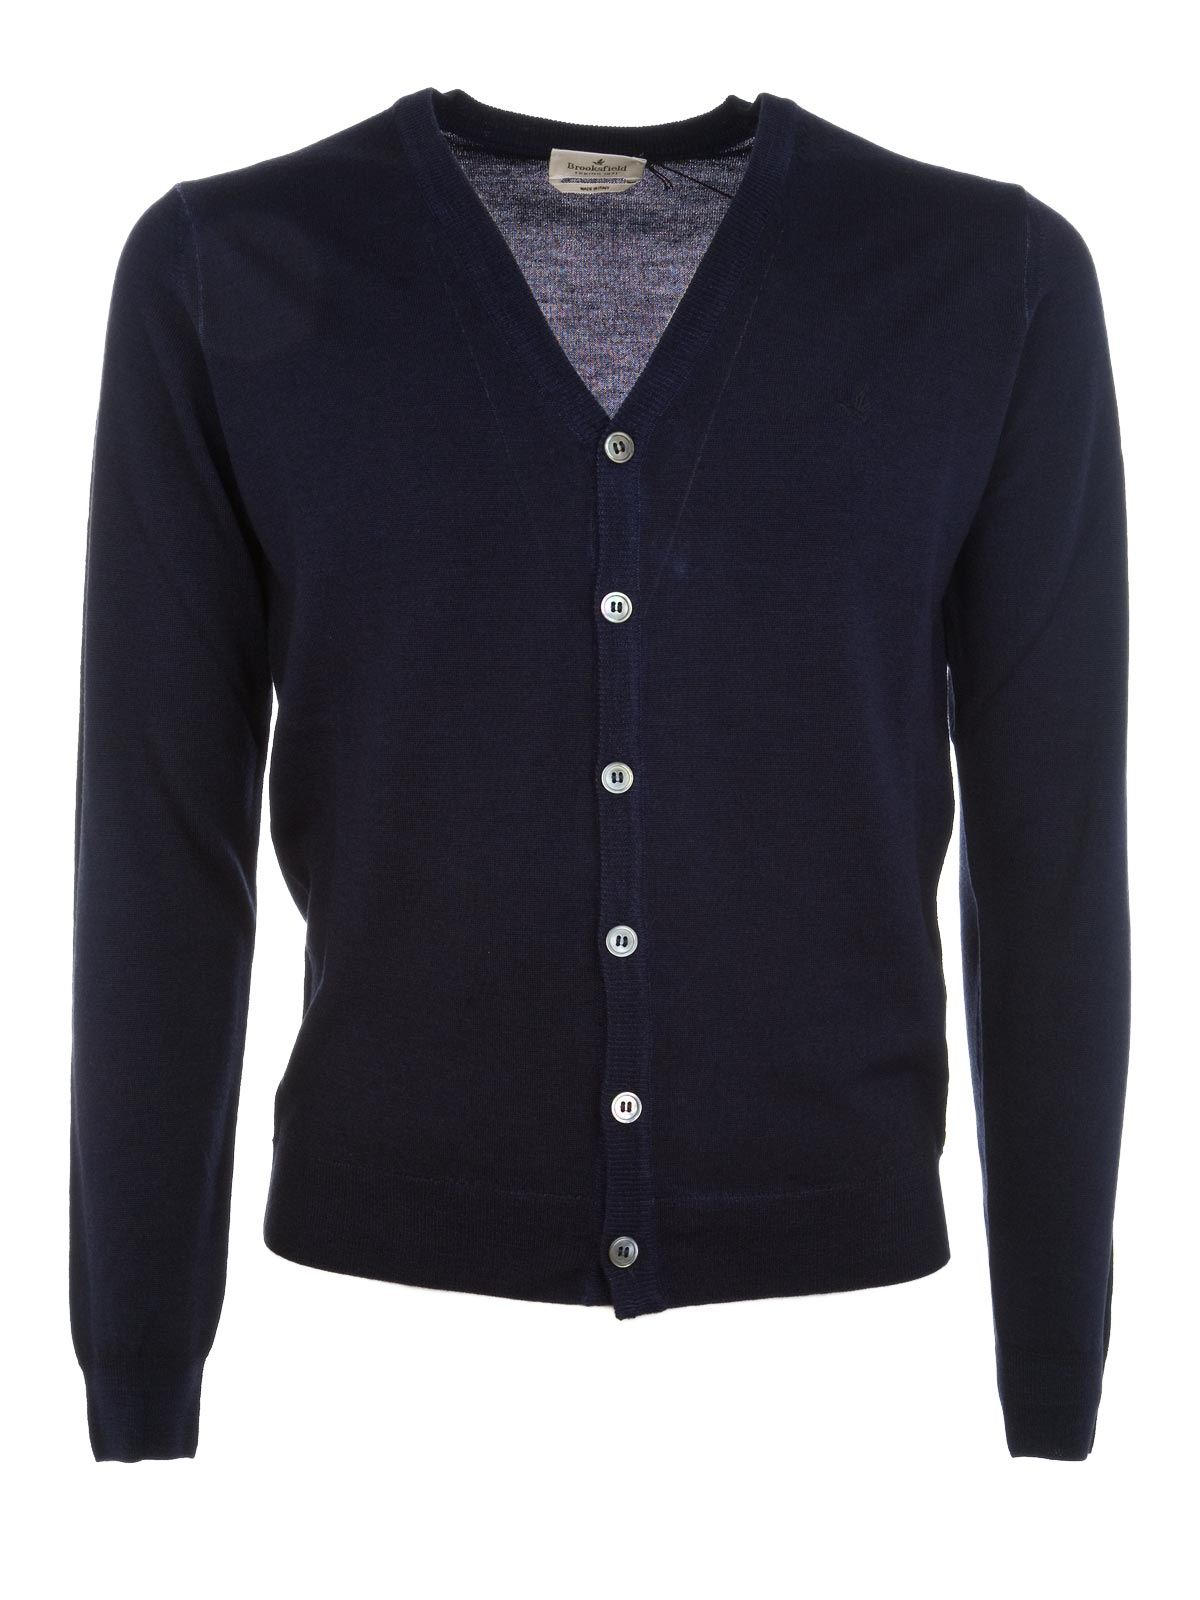 Picture of BROOKSFIELD | Wool Cardigan Sweater